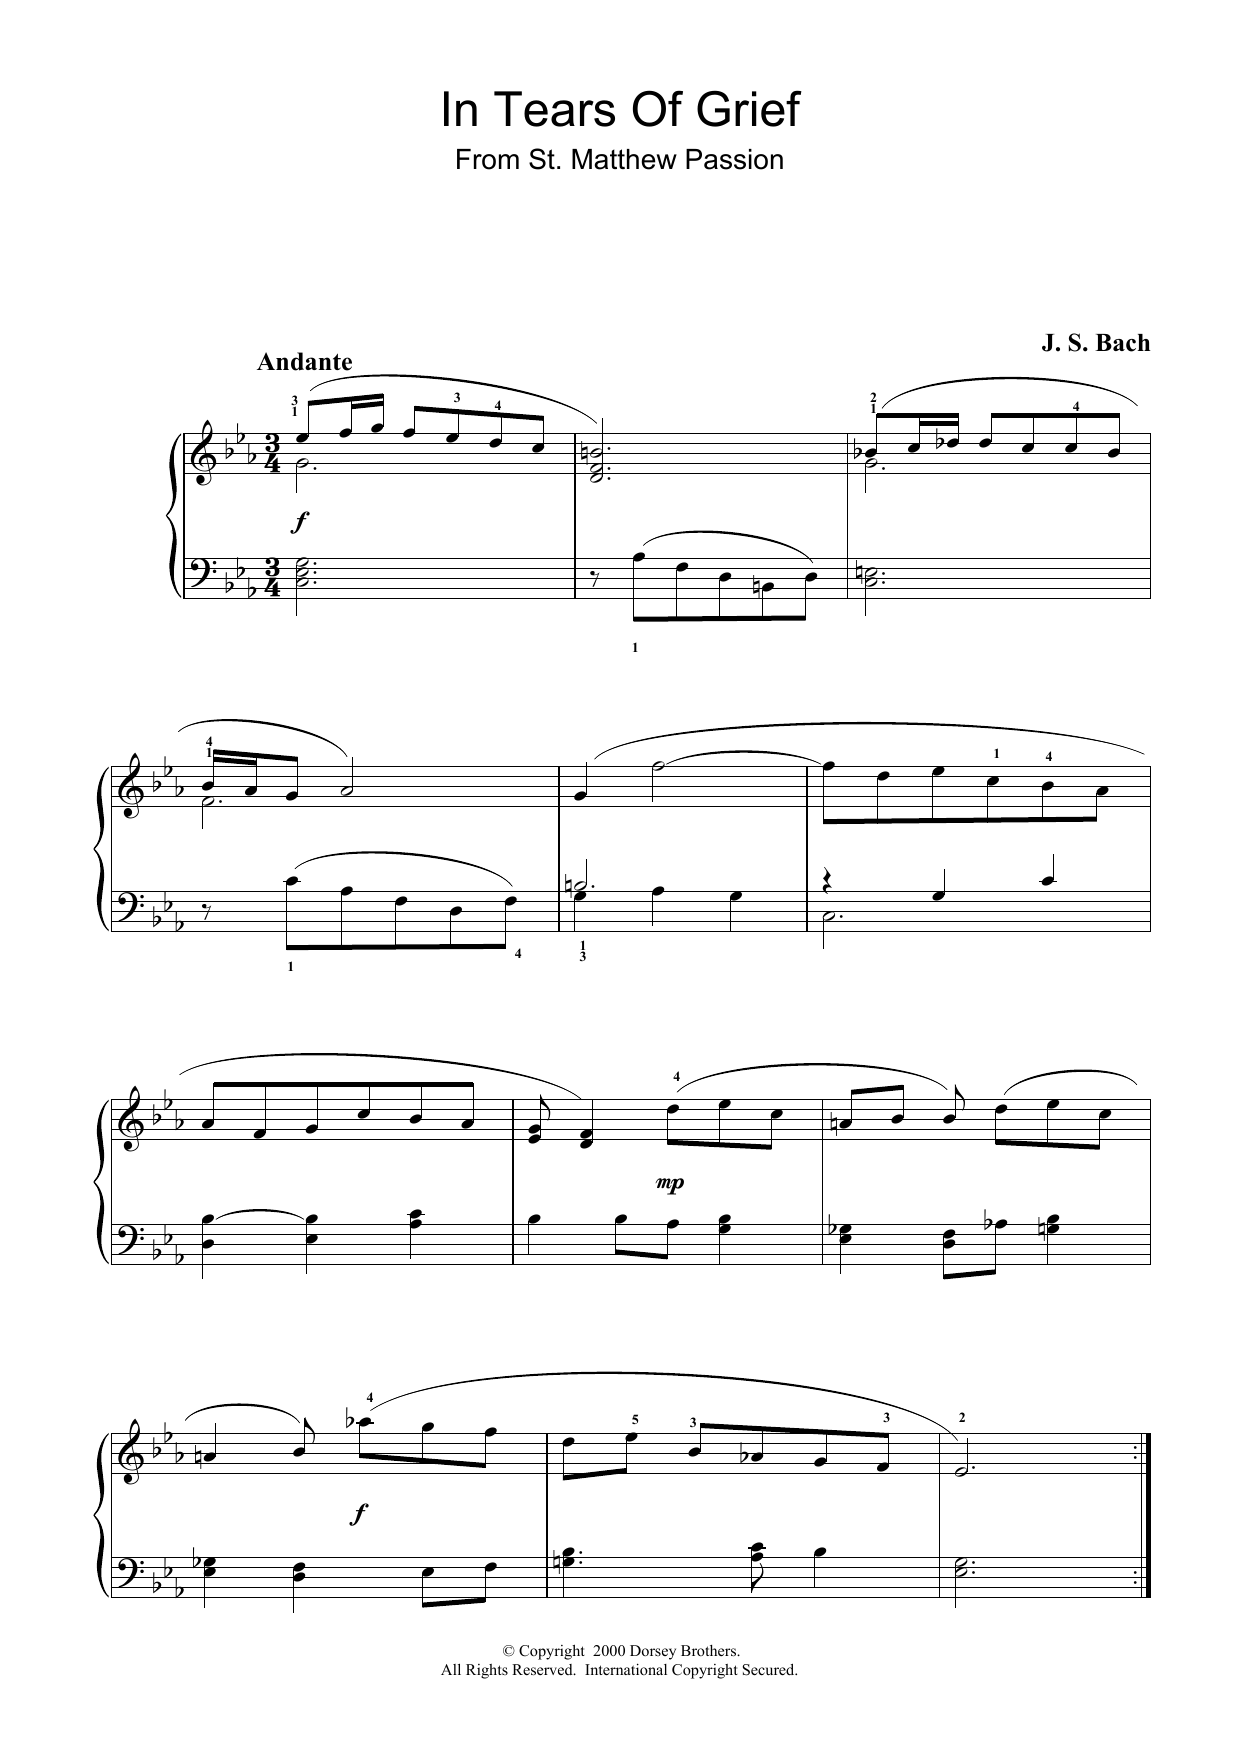 J.S. Bach In Tears Of Grief (from St Matthew Passion) sheet music preview music notes and score for Piano including 2 page(s)